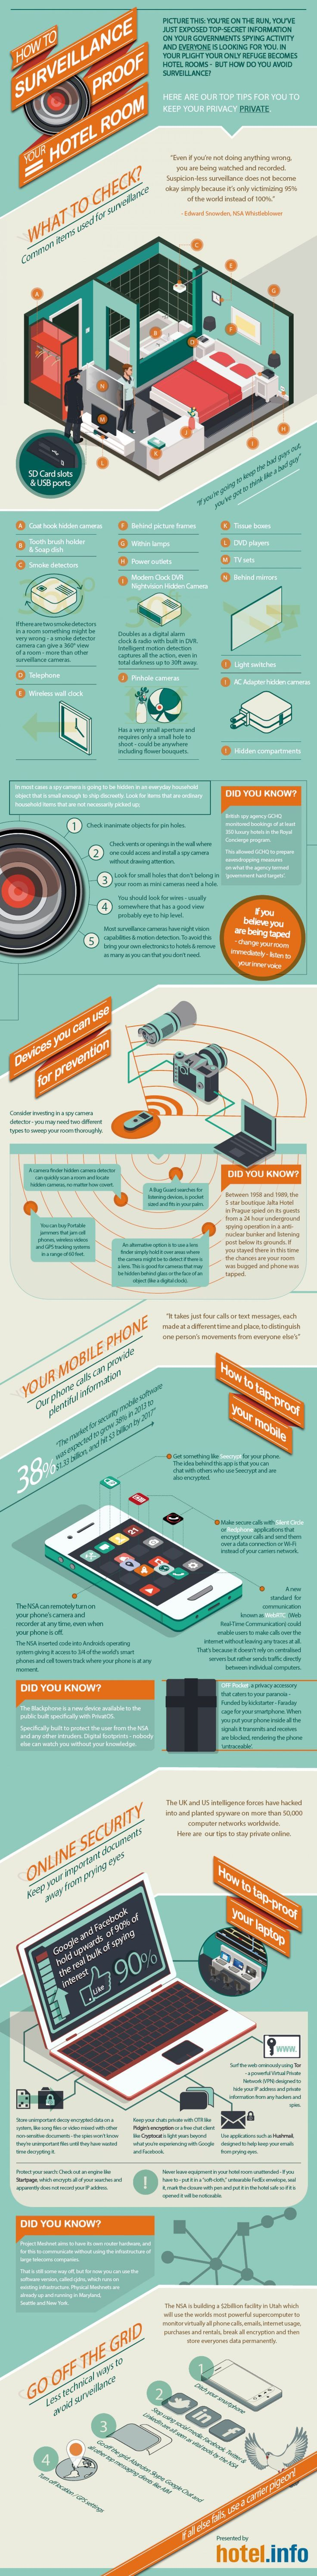 Drone Infographics : How To Surveillance Proof Your Hotel Room -Hotel.info has s...